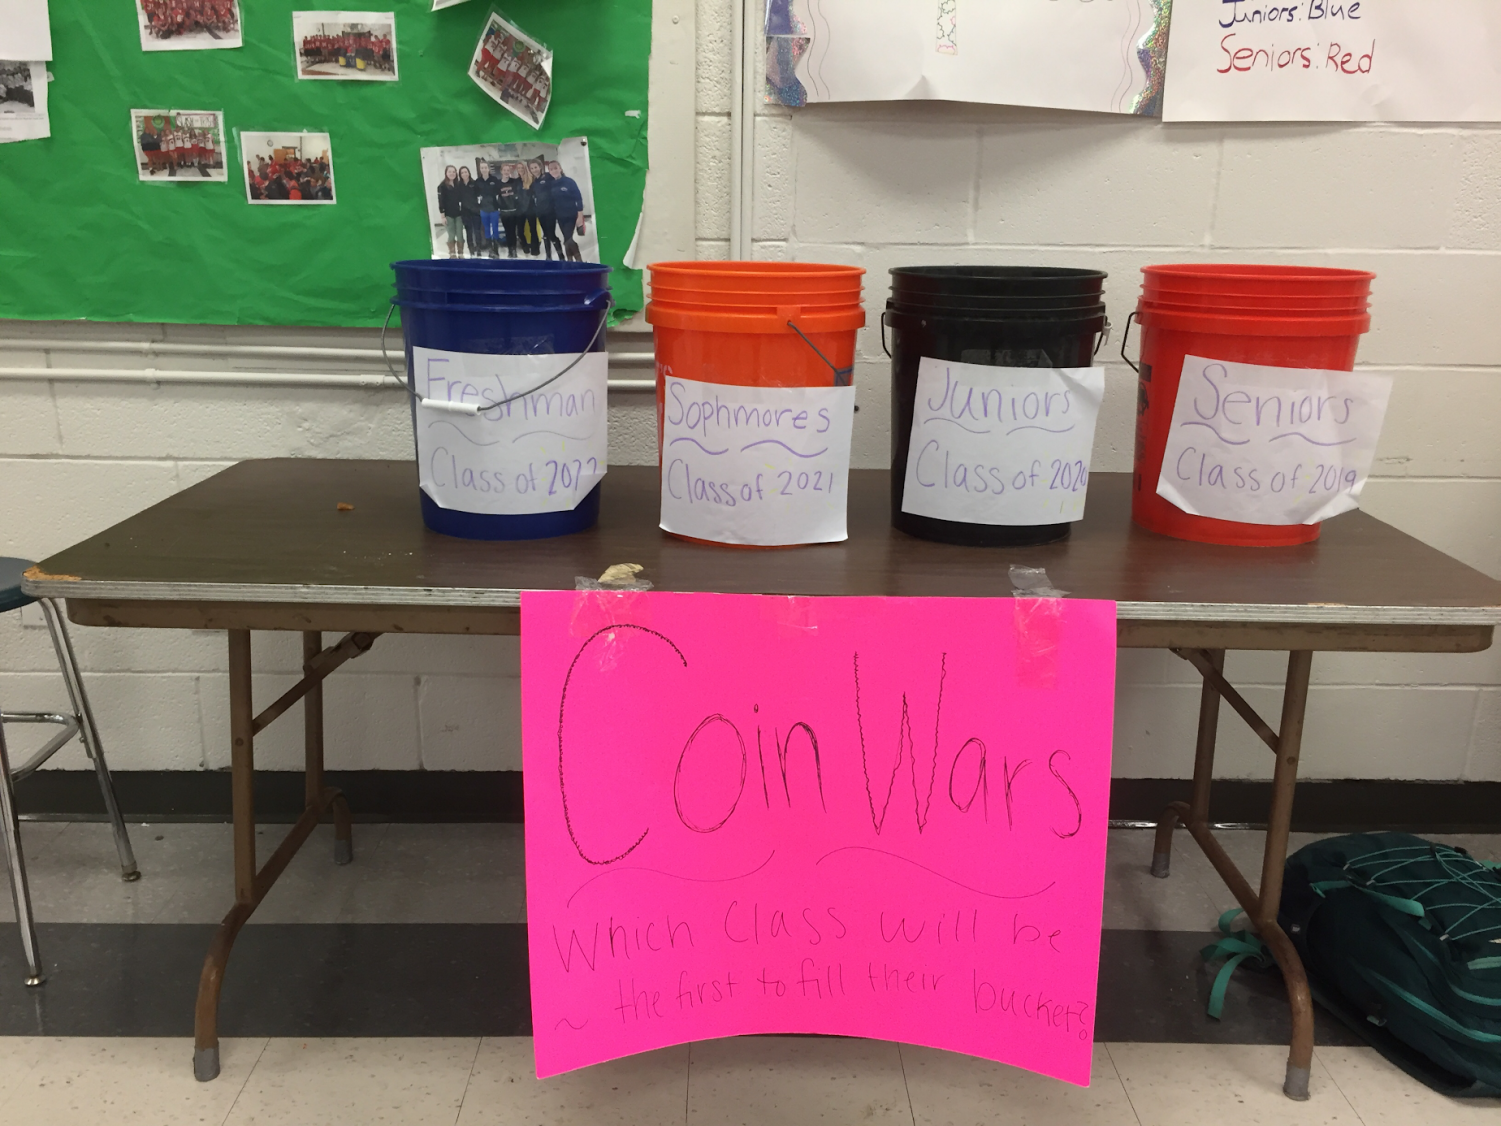 The coin wars pitted class against class for a good cause.